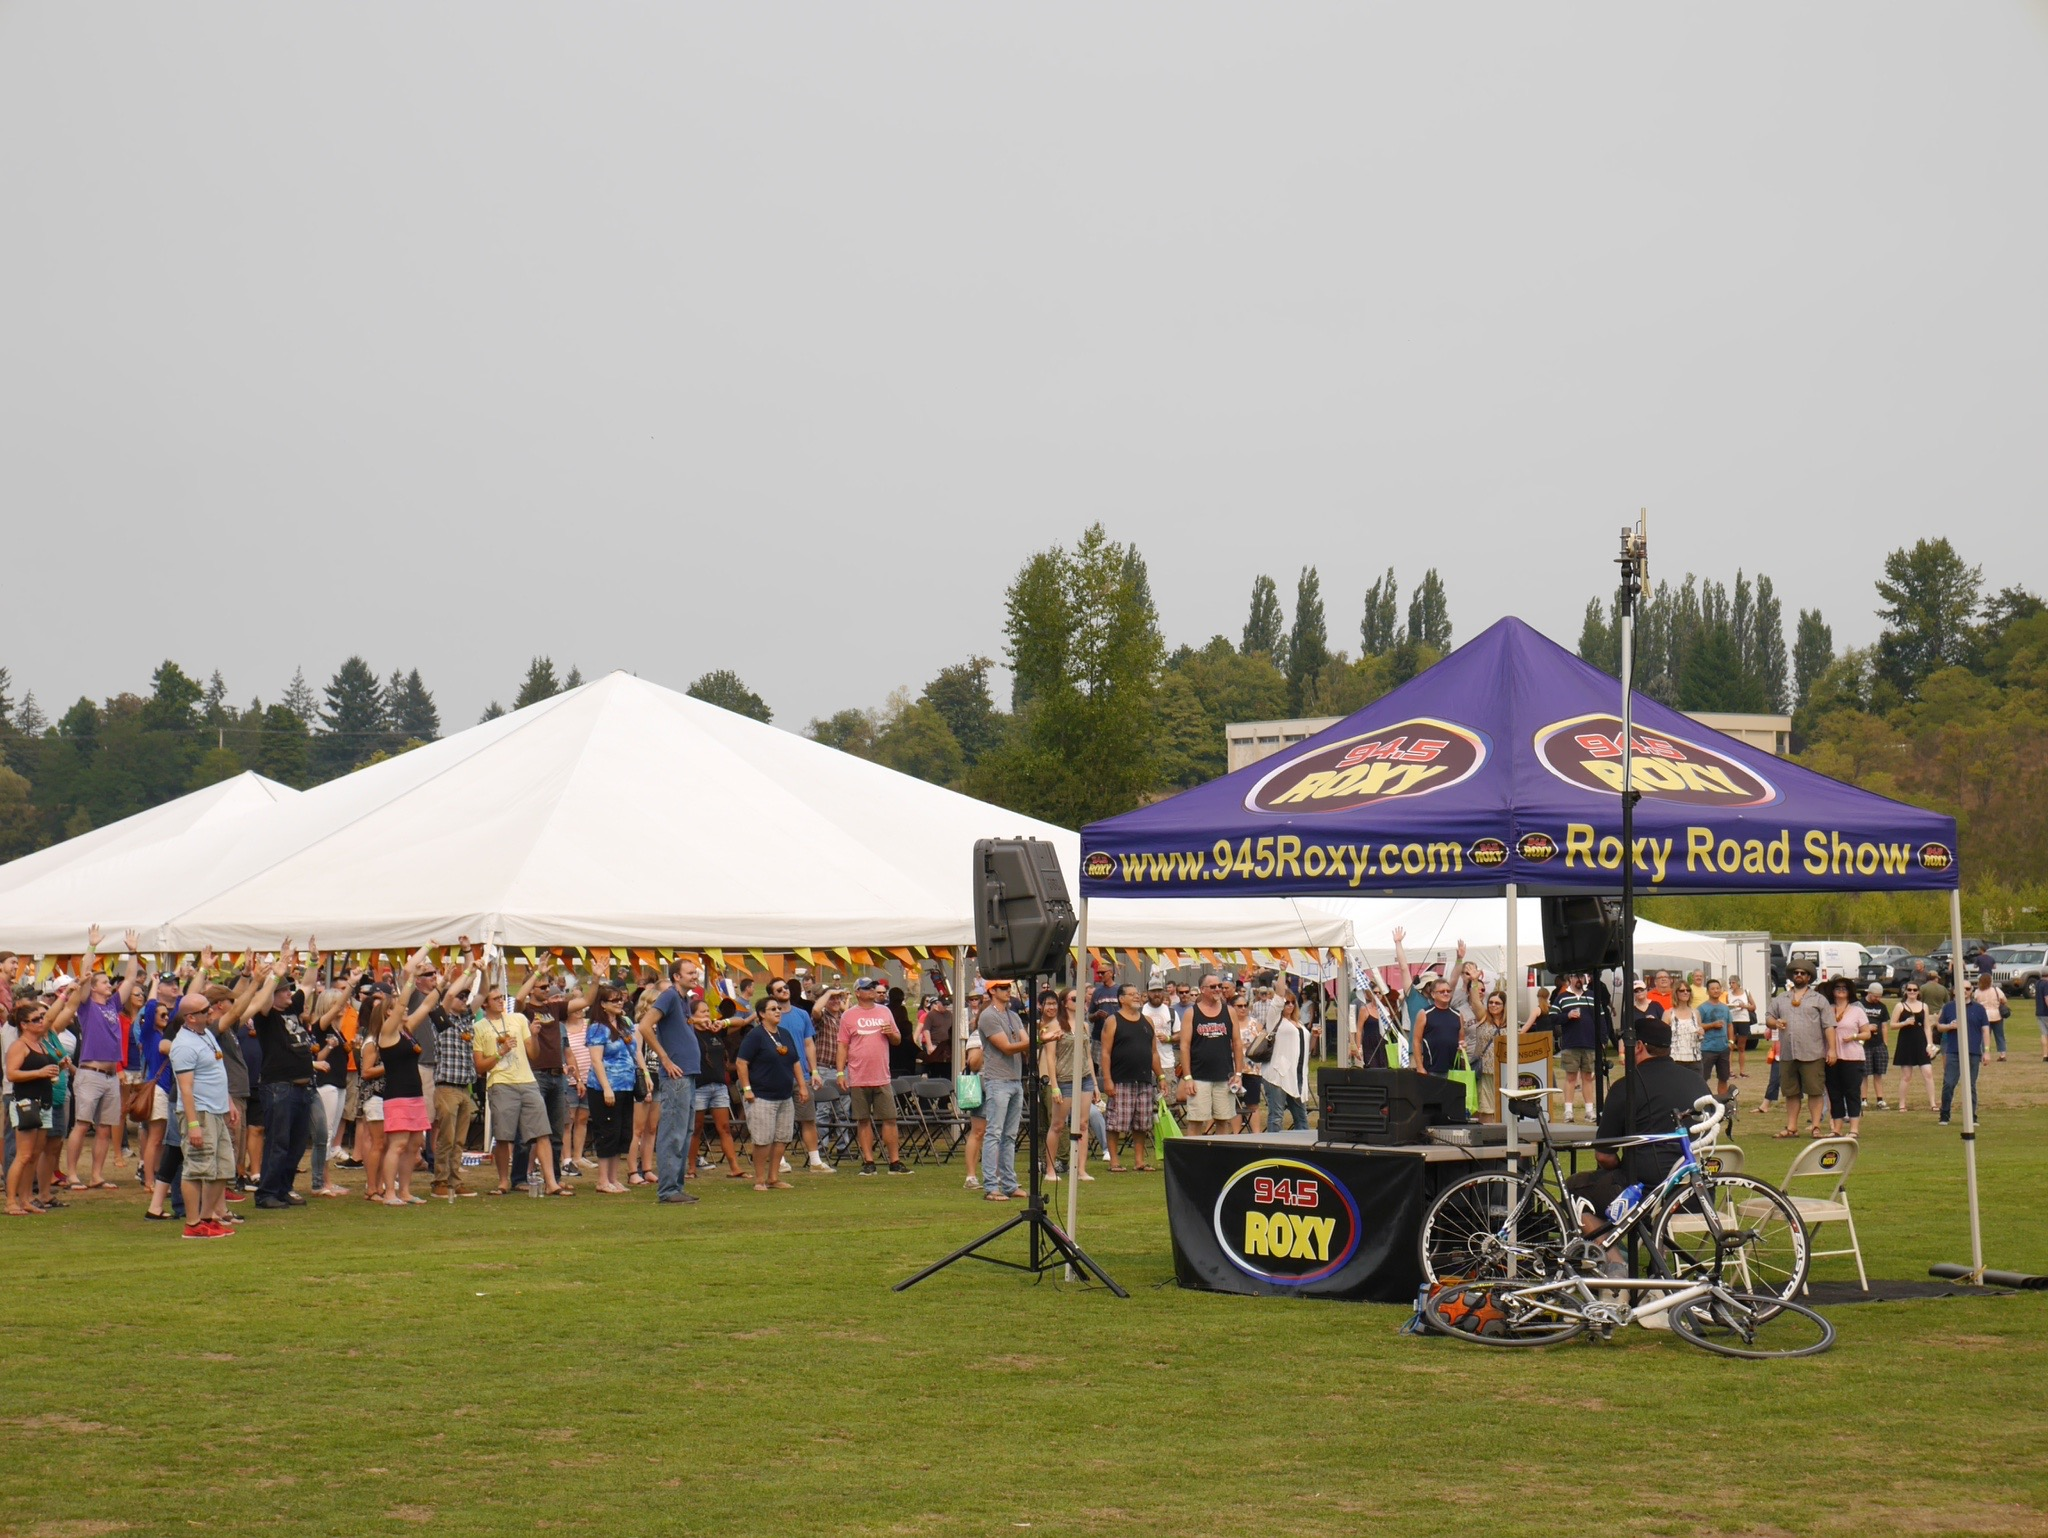 Tumwater Artesian Brewfest tents. (photo by Cat Stelzer)